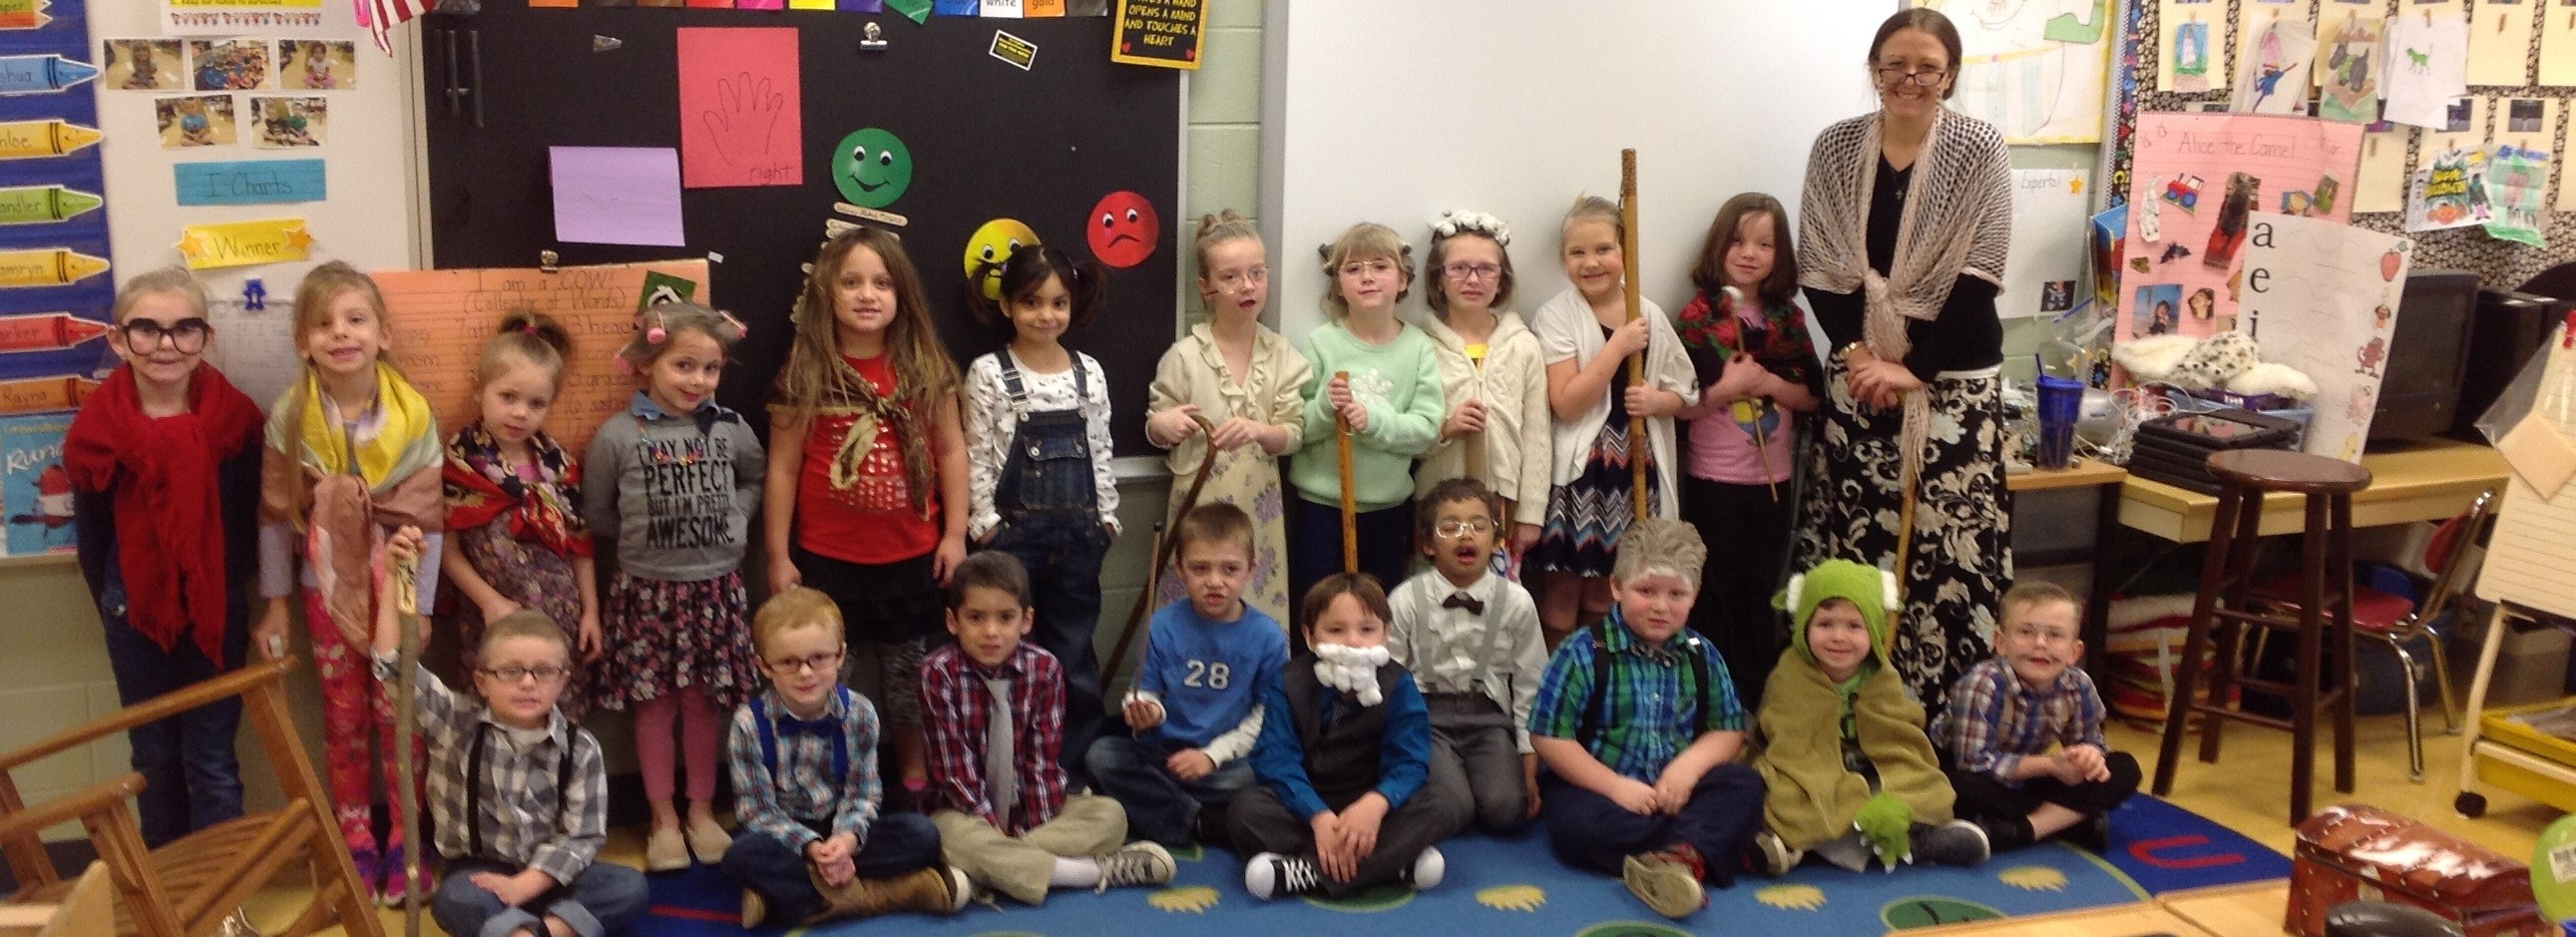 Mrs Mizer's Kindergarten Class Celebrating the 100th Day of School!